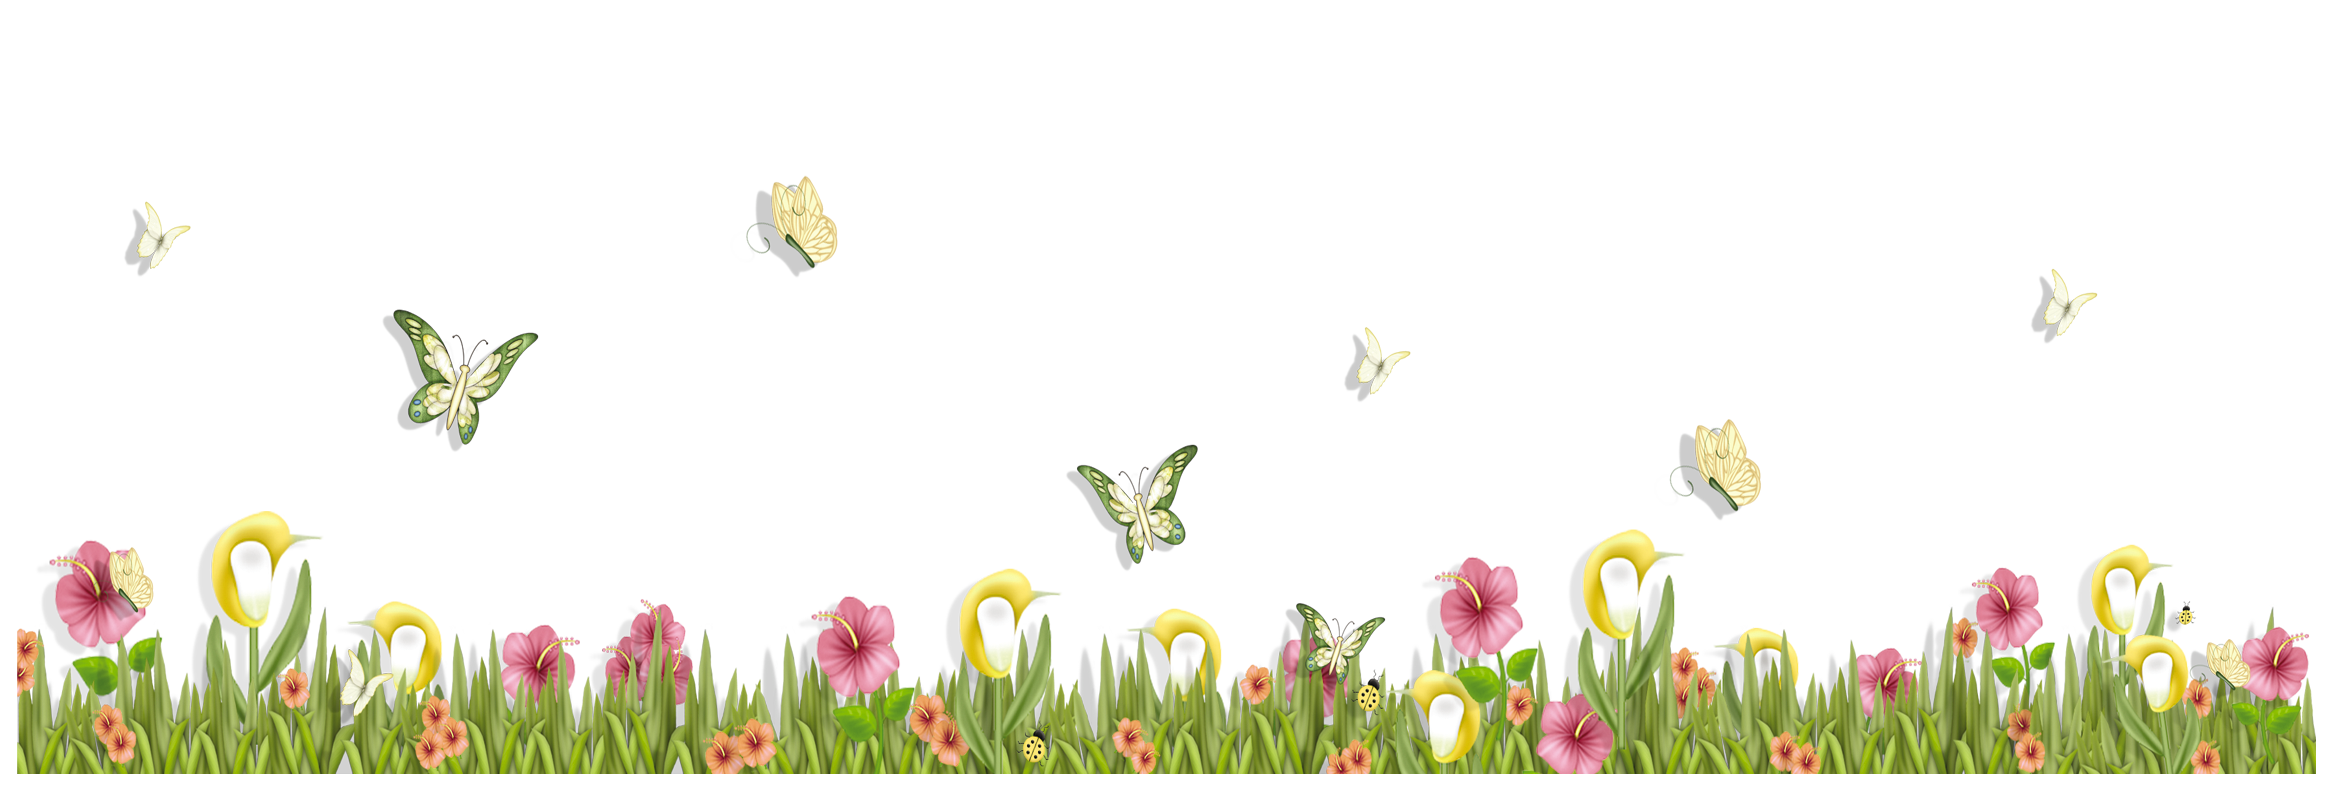 clip art freeuse Butterflies clipart banner. Grass with and flowers.